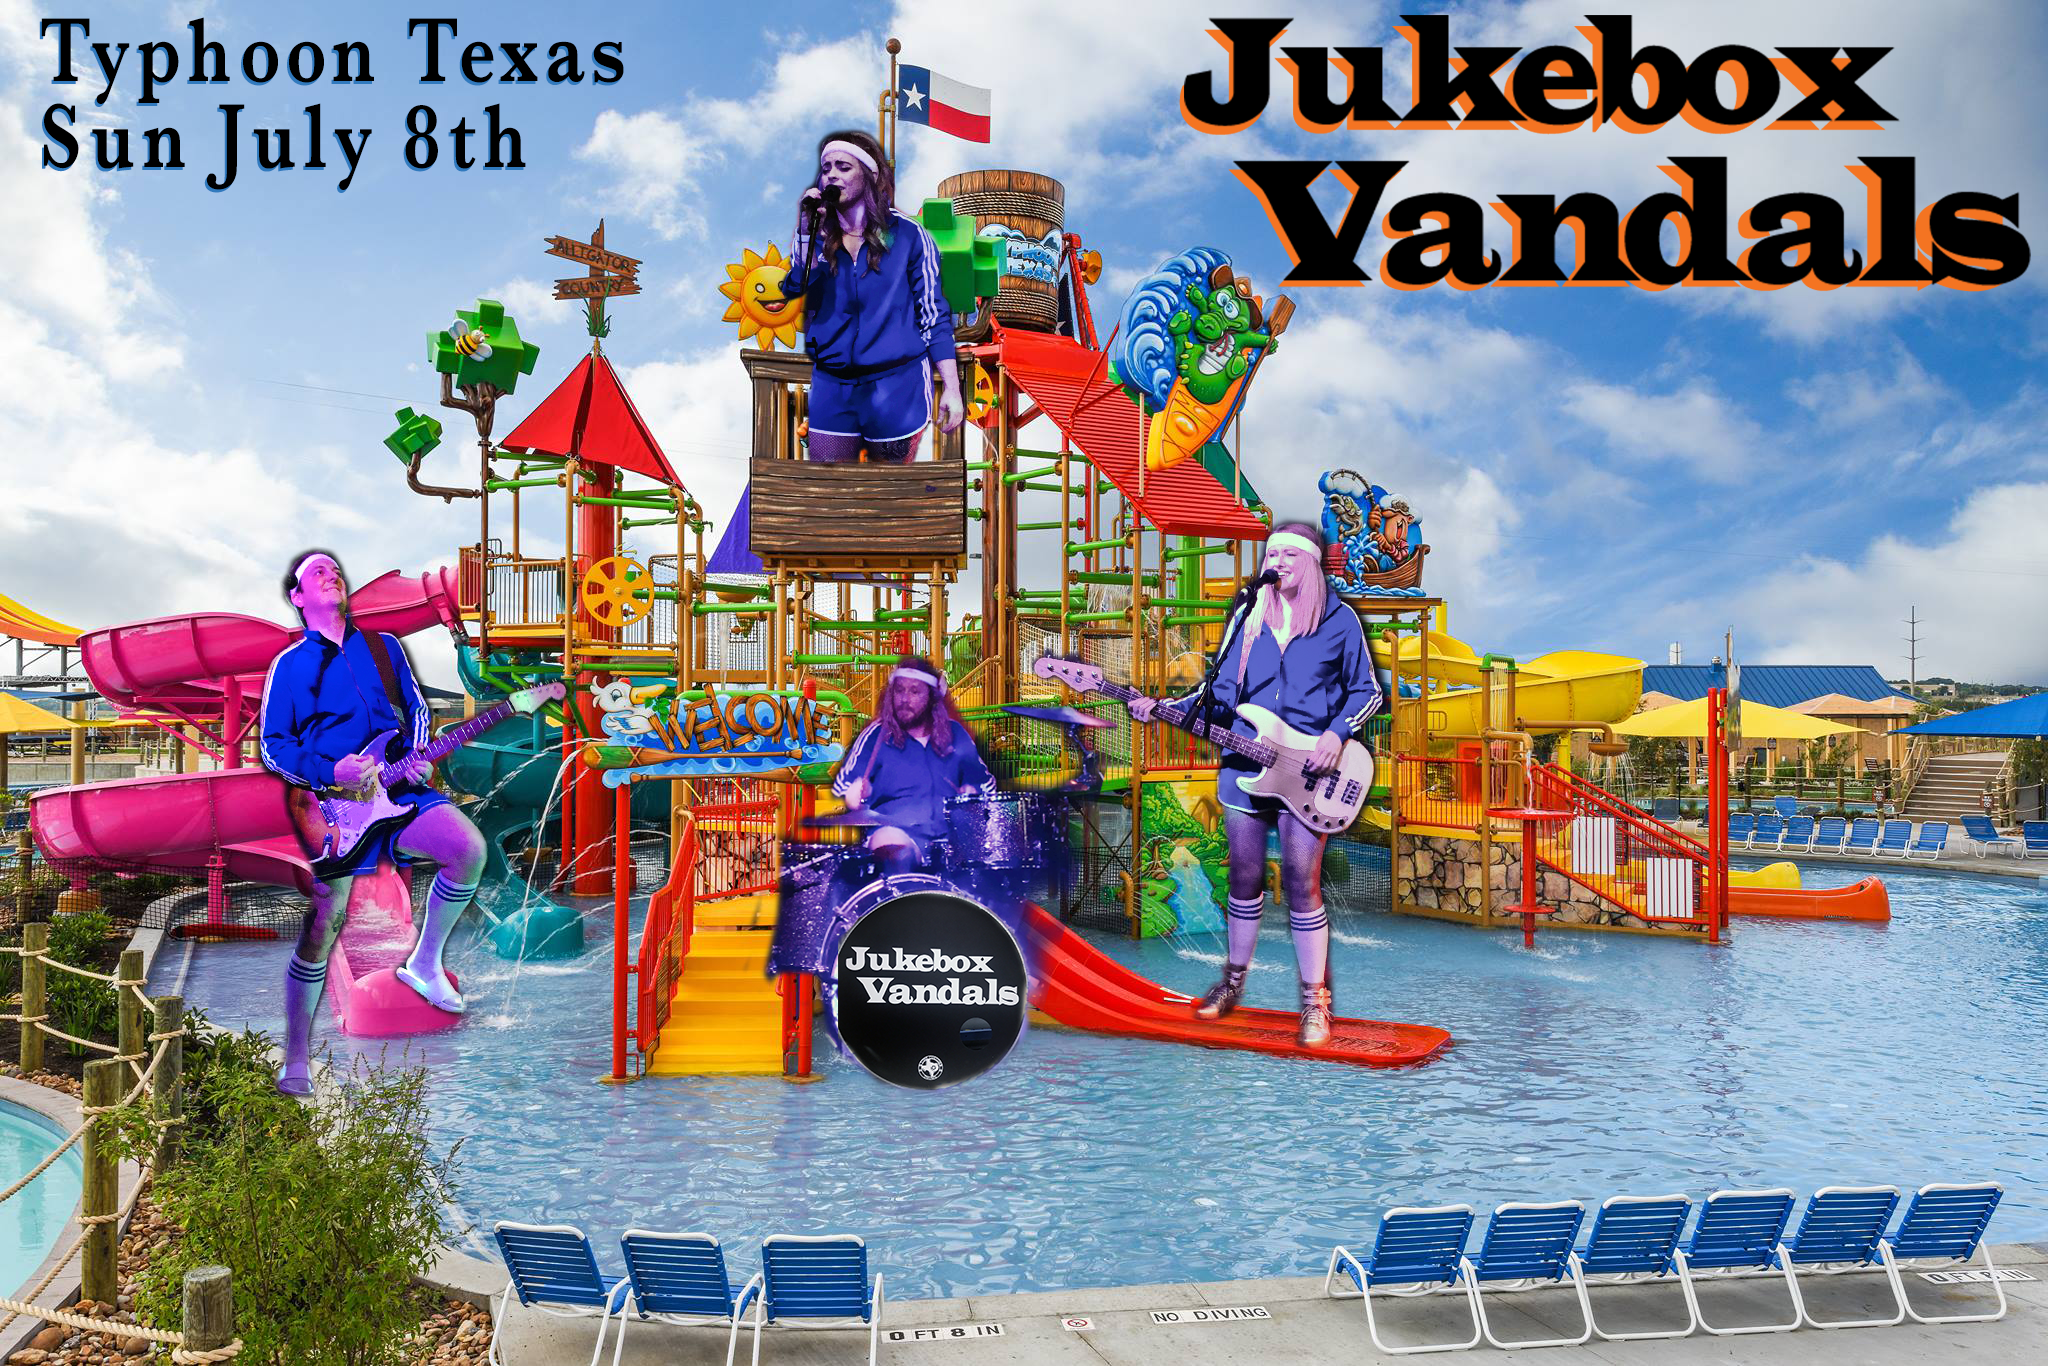 Jukebox Vandals play Typhoon Texas in Austin on July 8, 2018